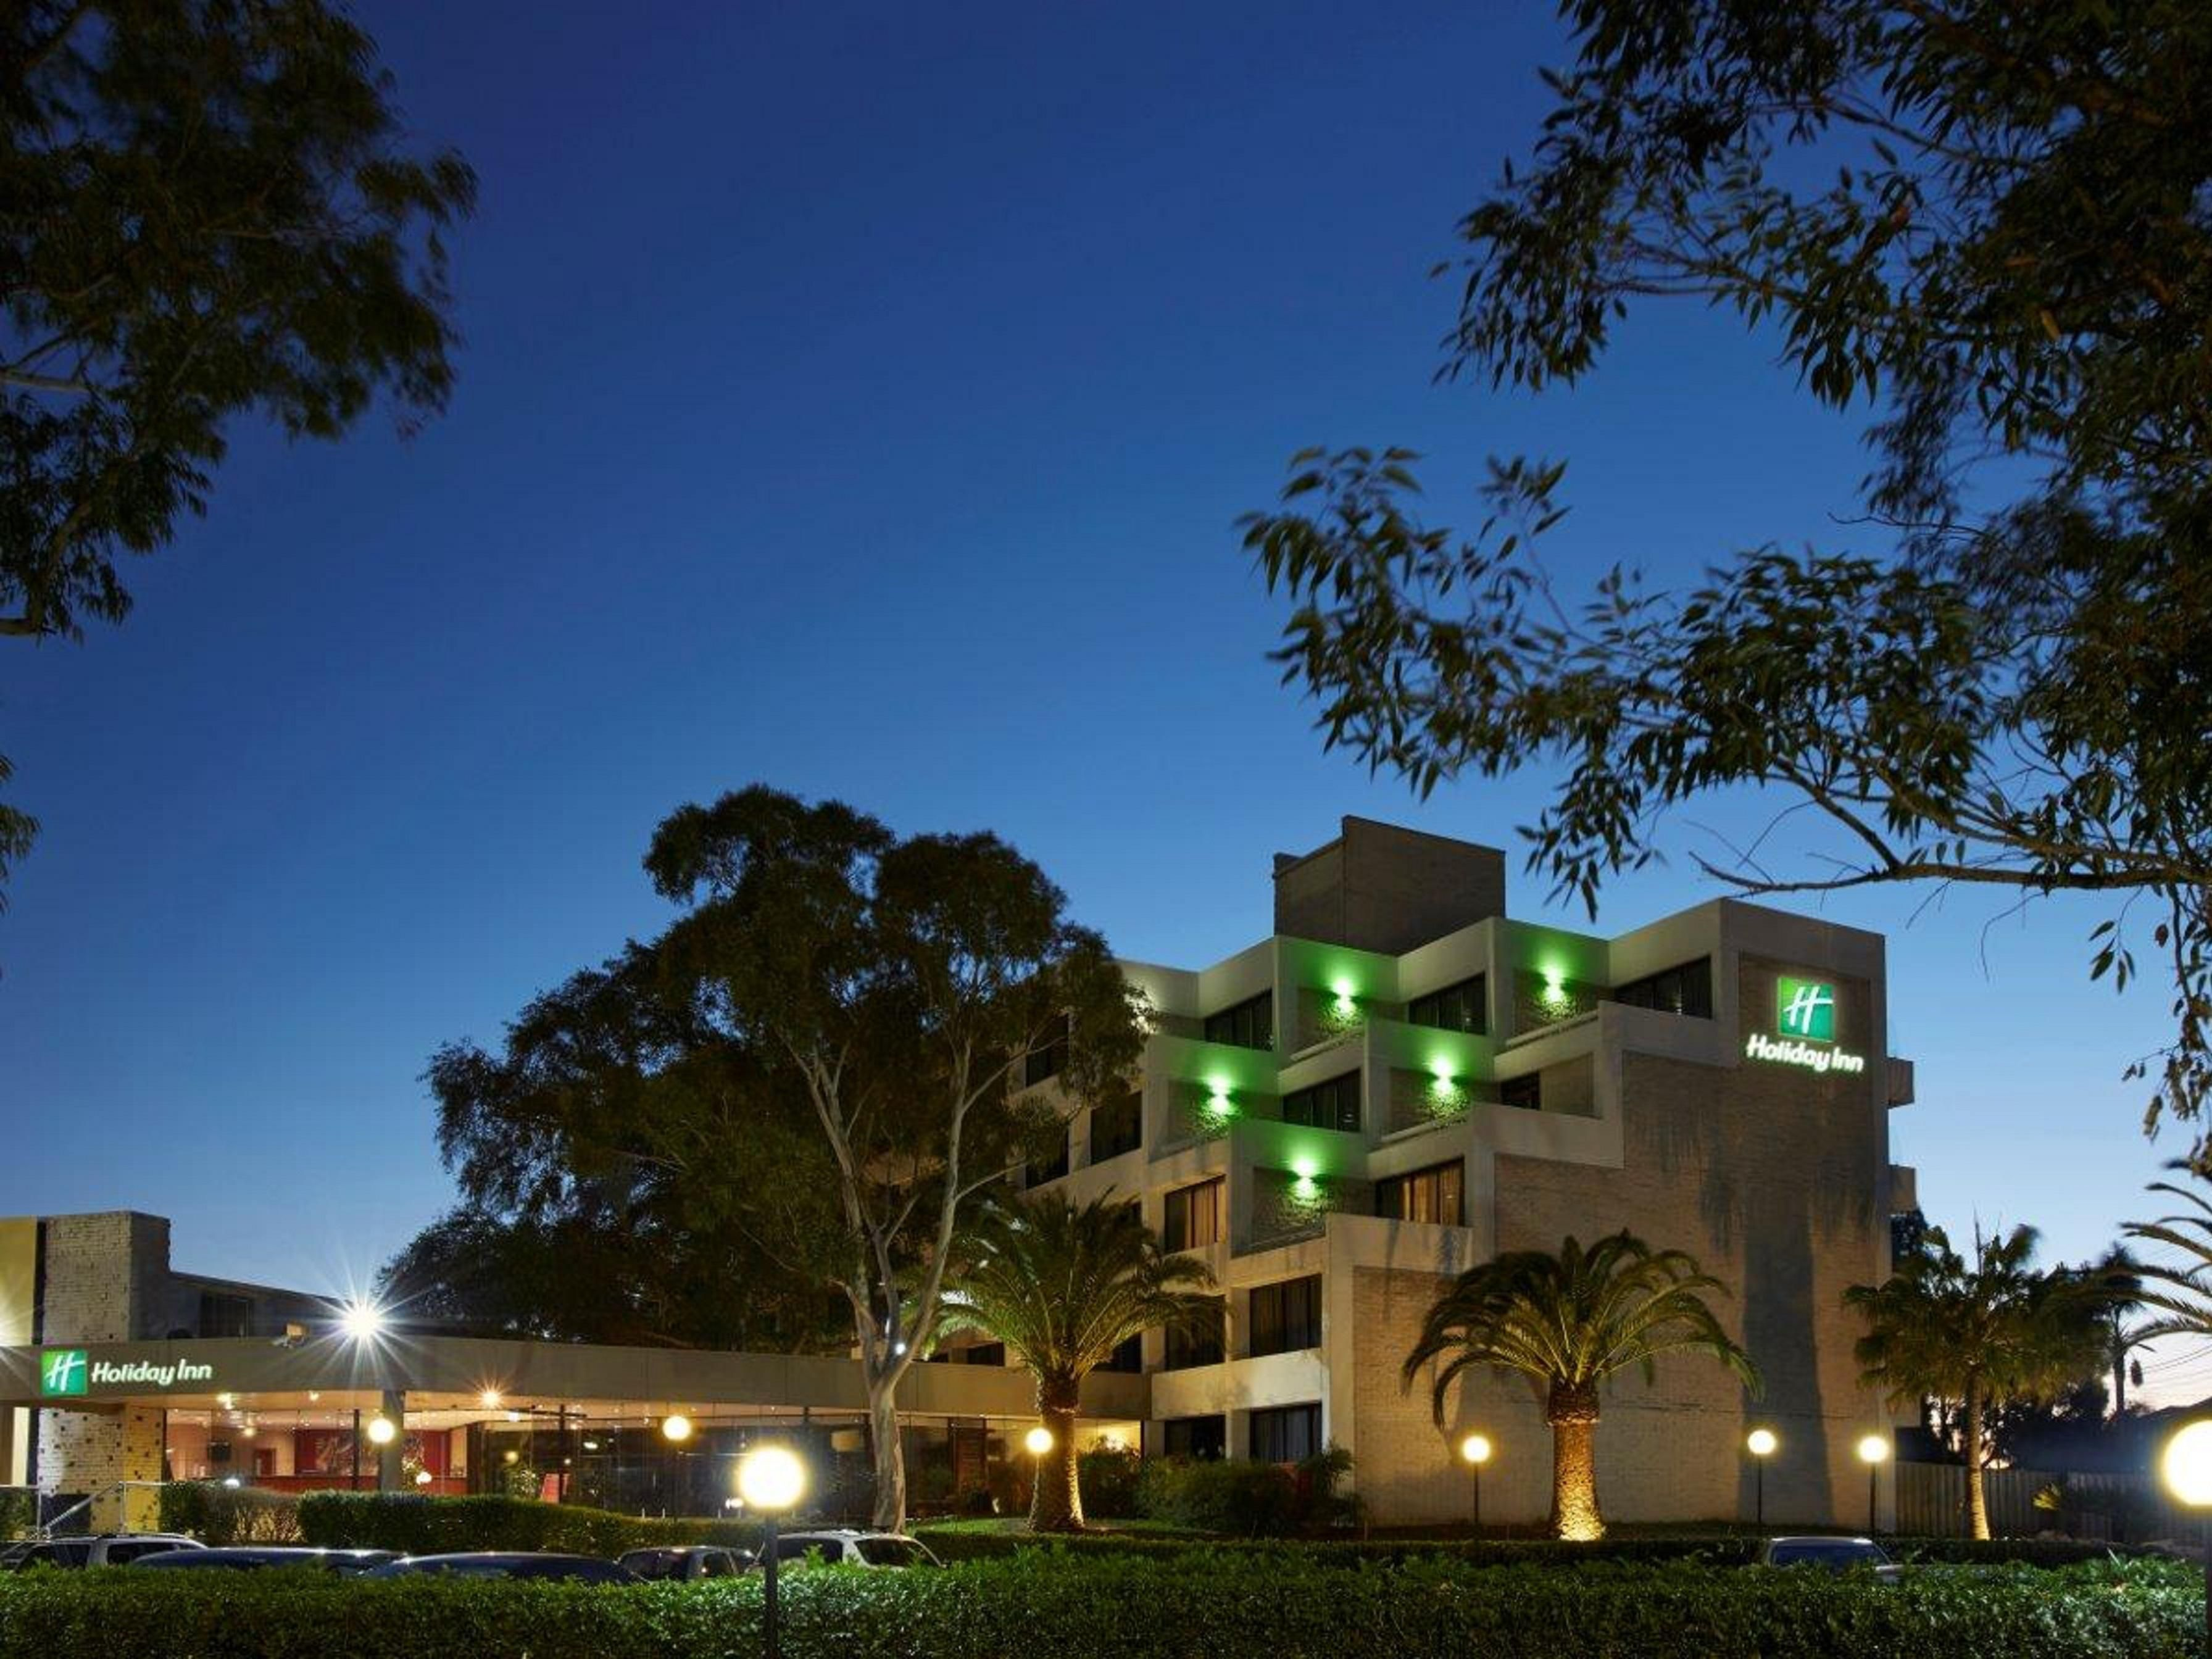 Holiday Inn Warwick Farm at dusk